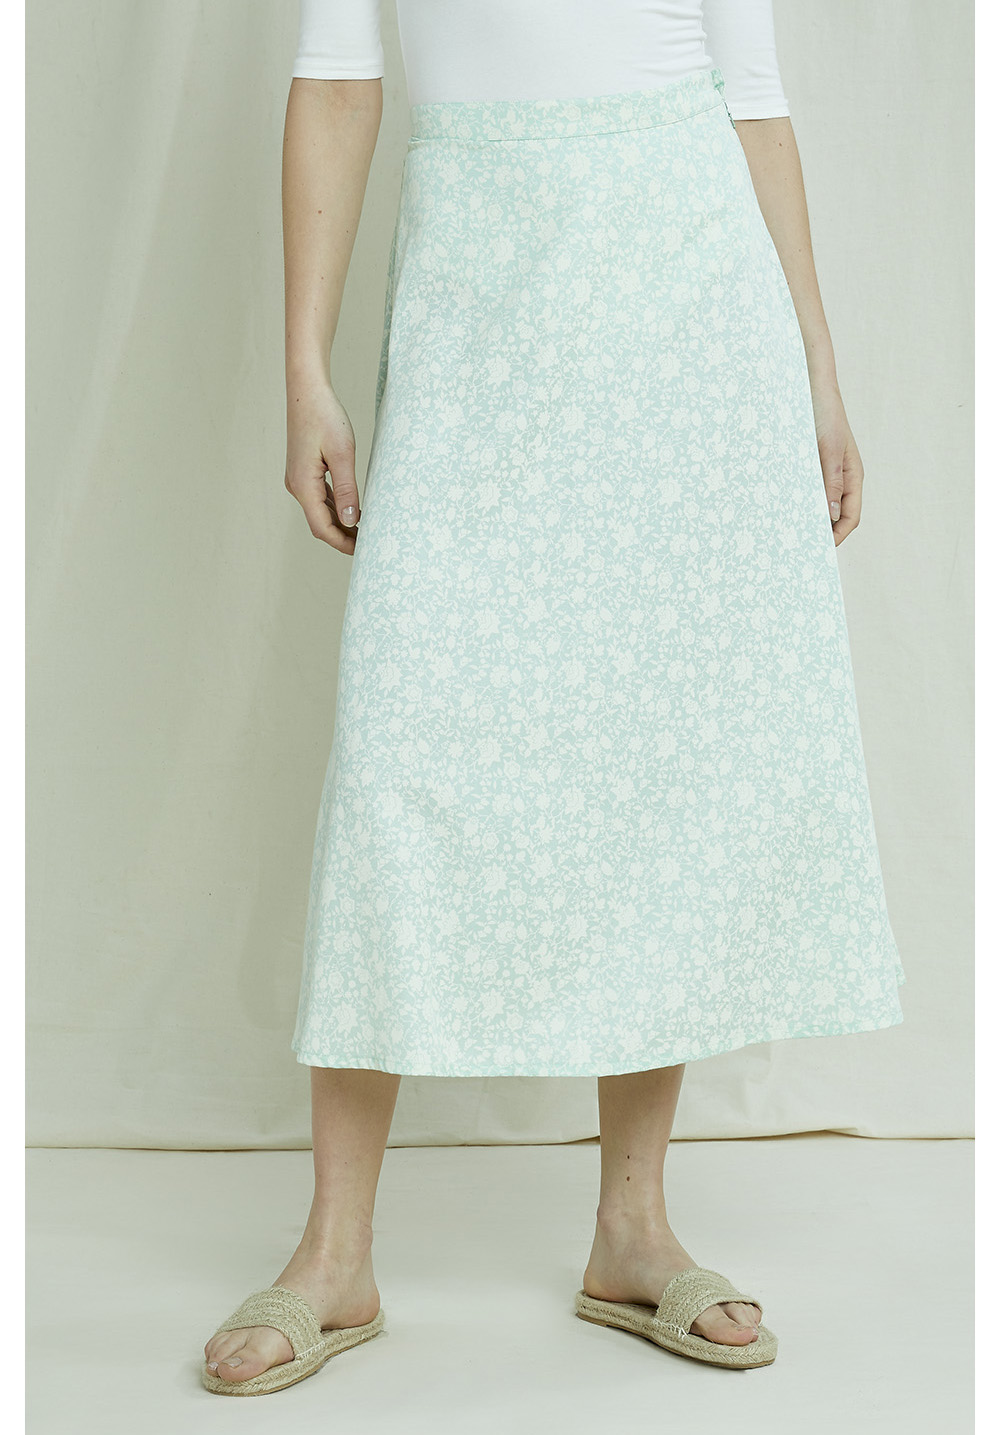 Alison Silhouette Floral Skirt 12